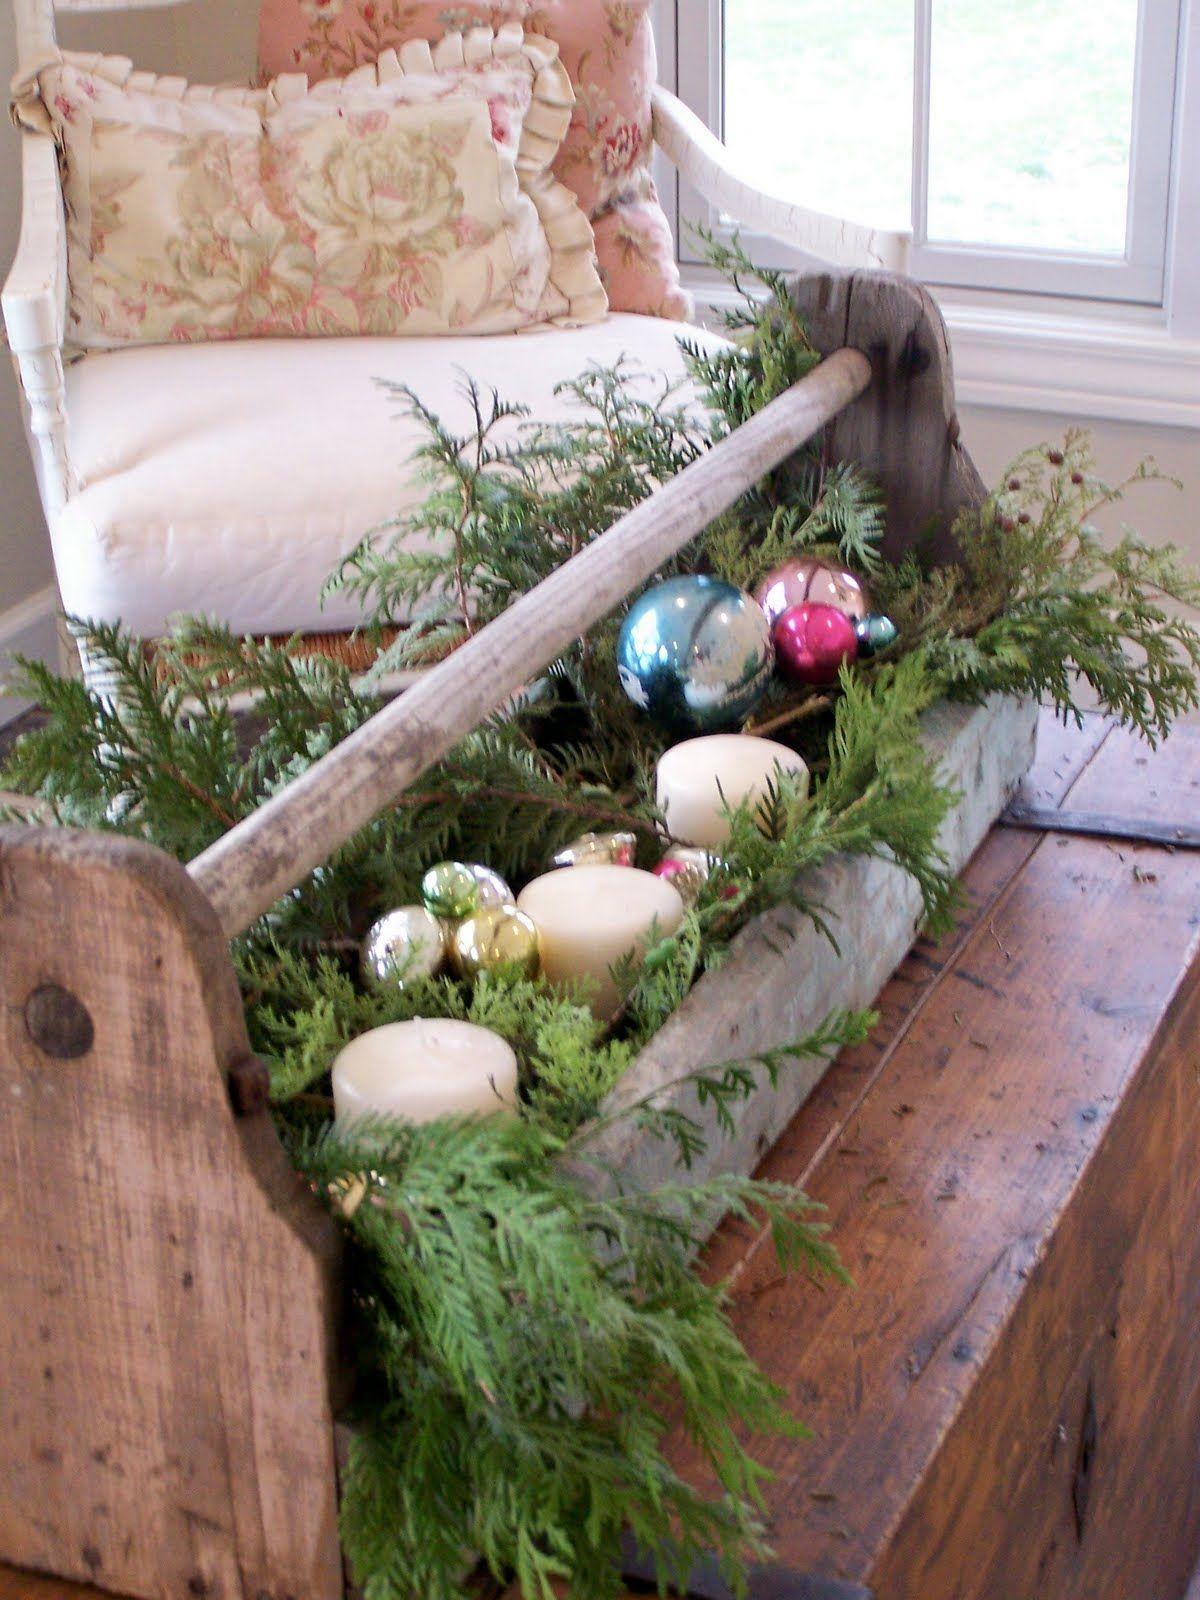 Love This Rustic Look : Decorated Vintage Toolbox  #christmas #ornaments  #holdiay Decor